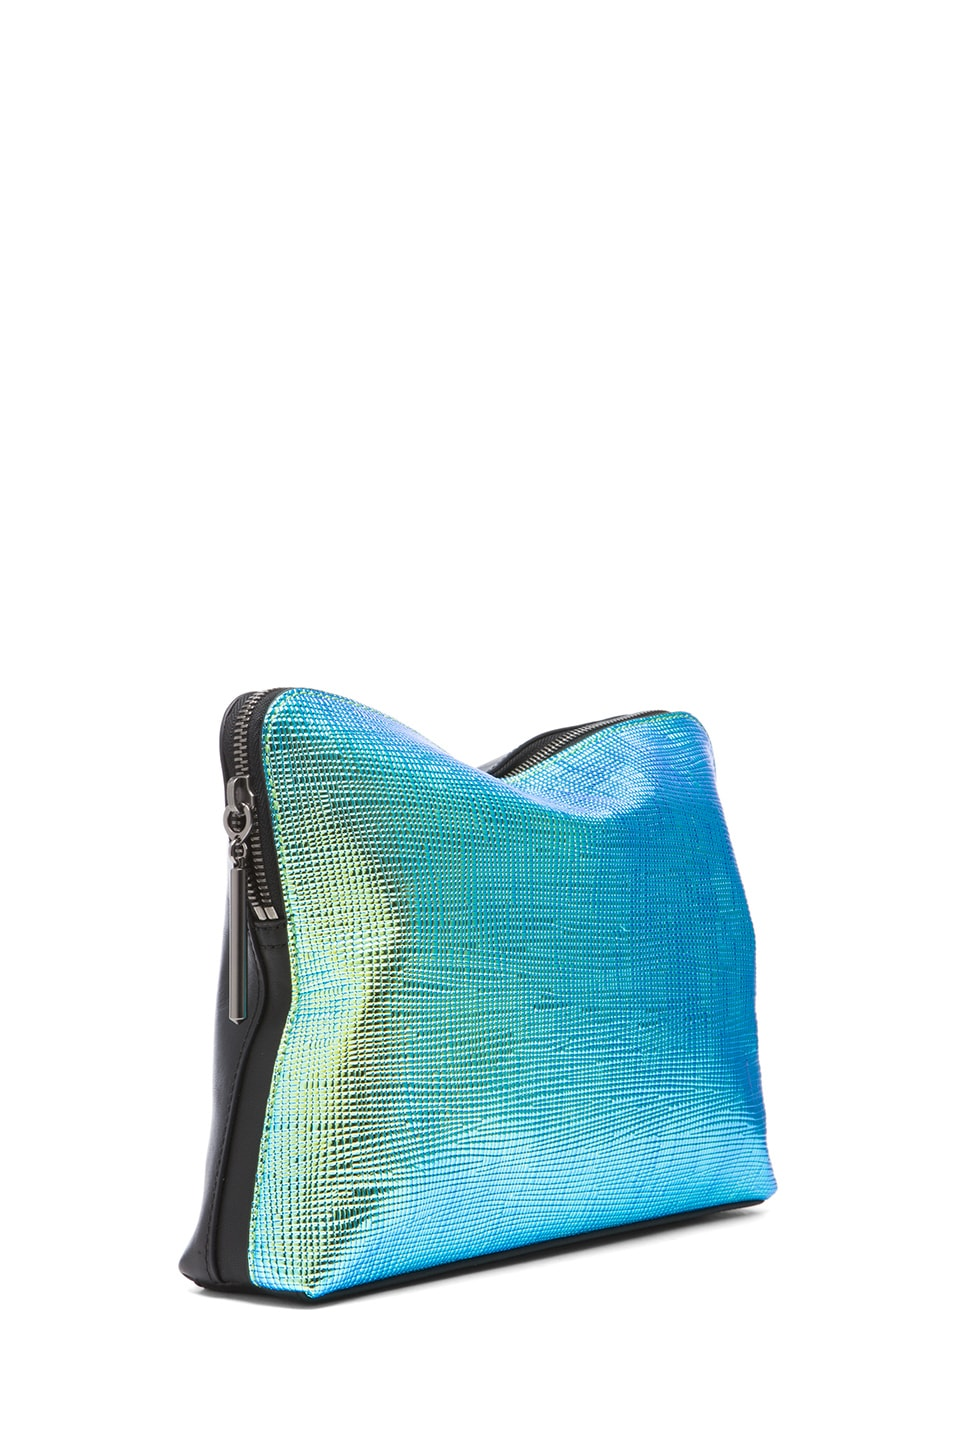 Image 3 of 3.1 phillip lim 31 Minute Cosmetic Bag in Blue-Green & Black